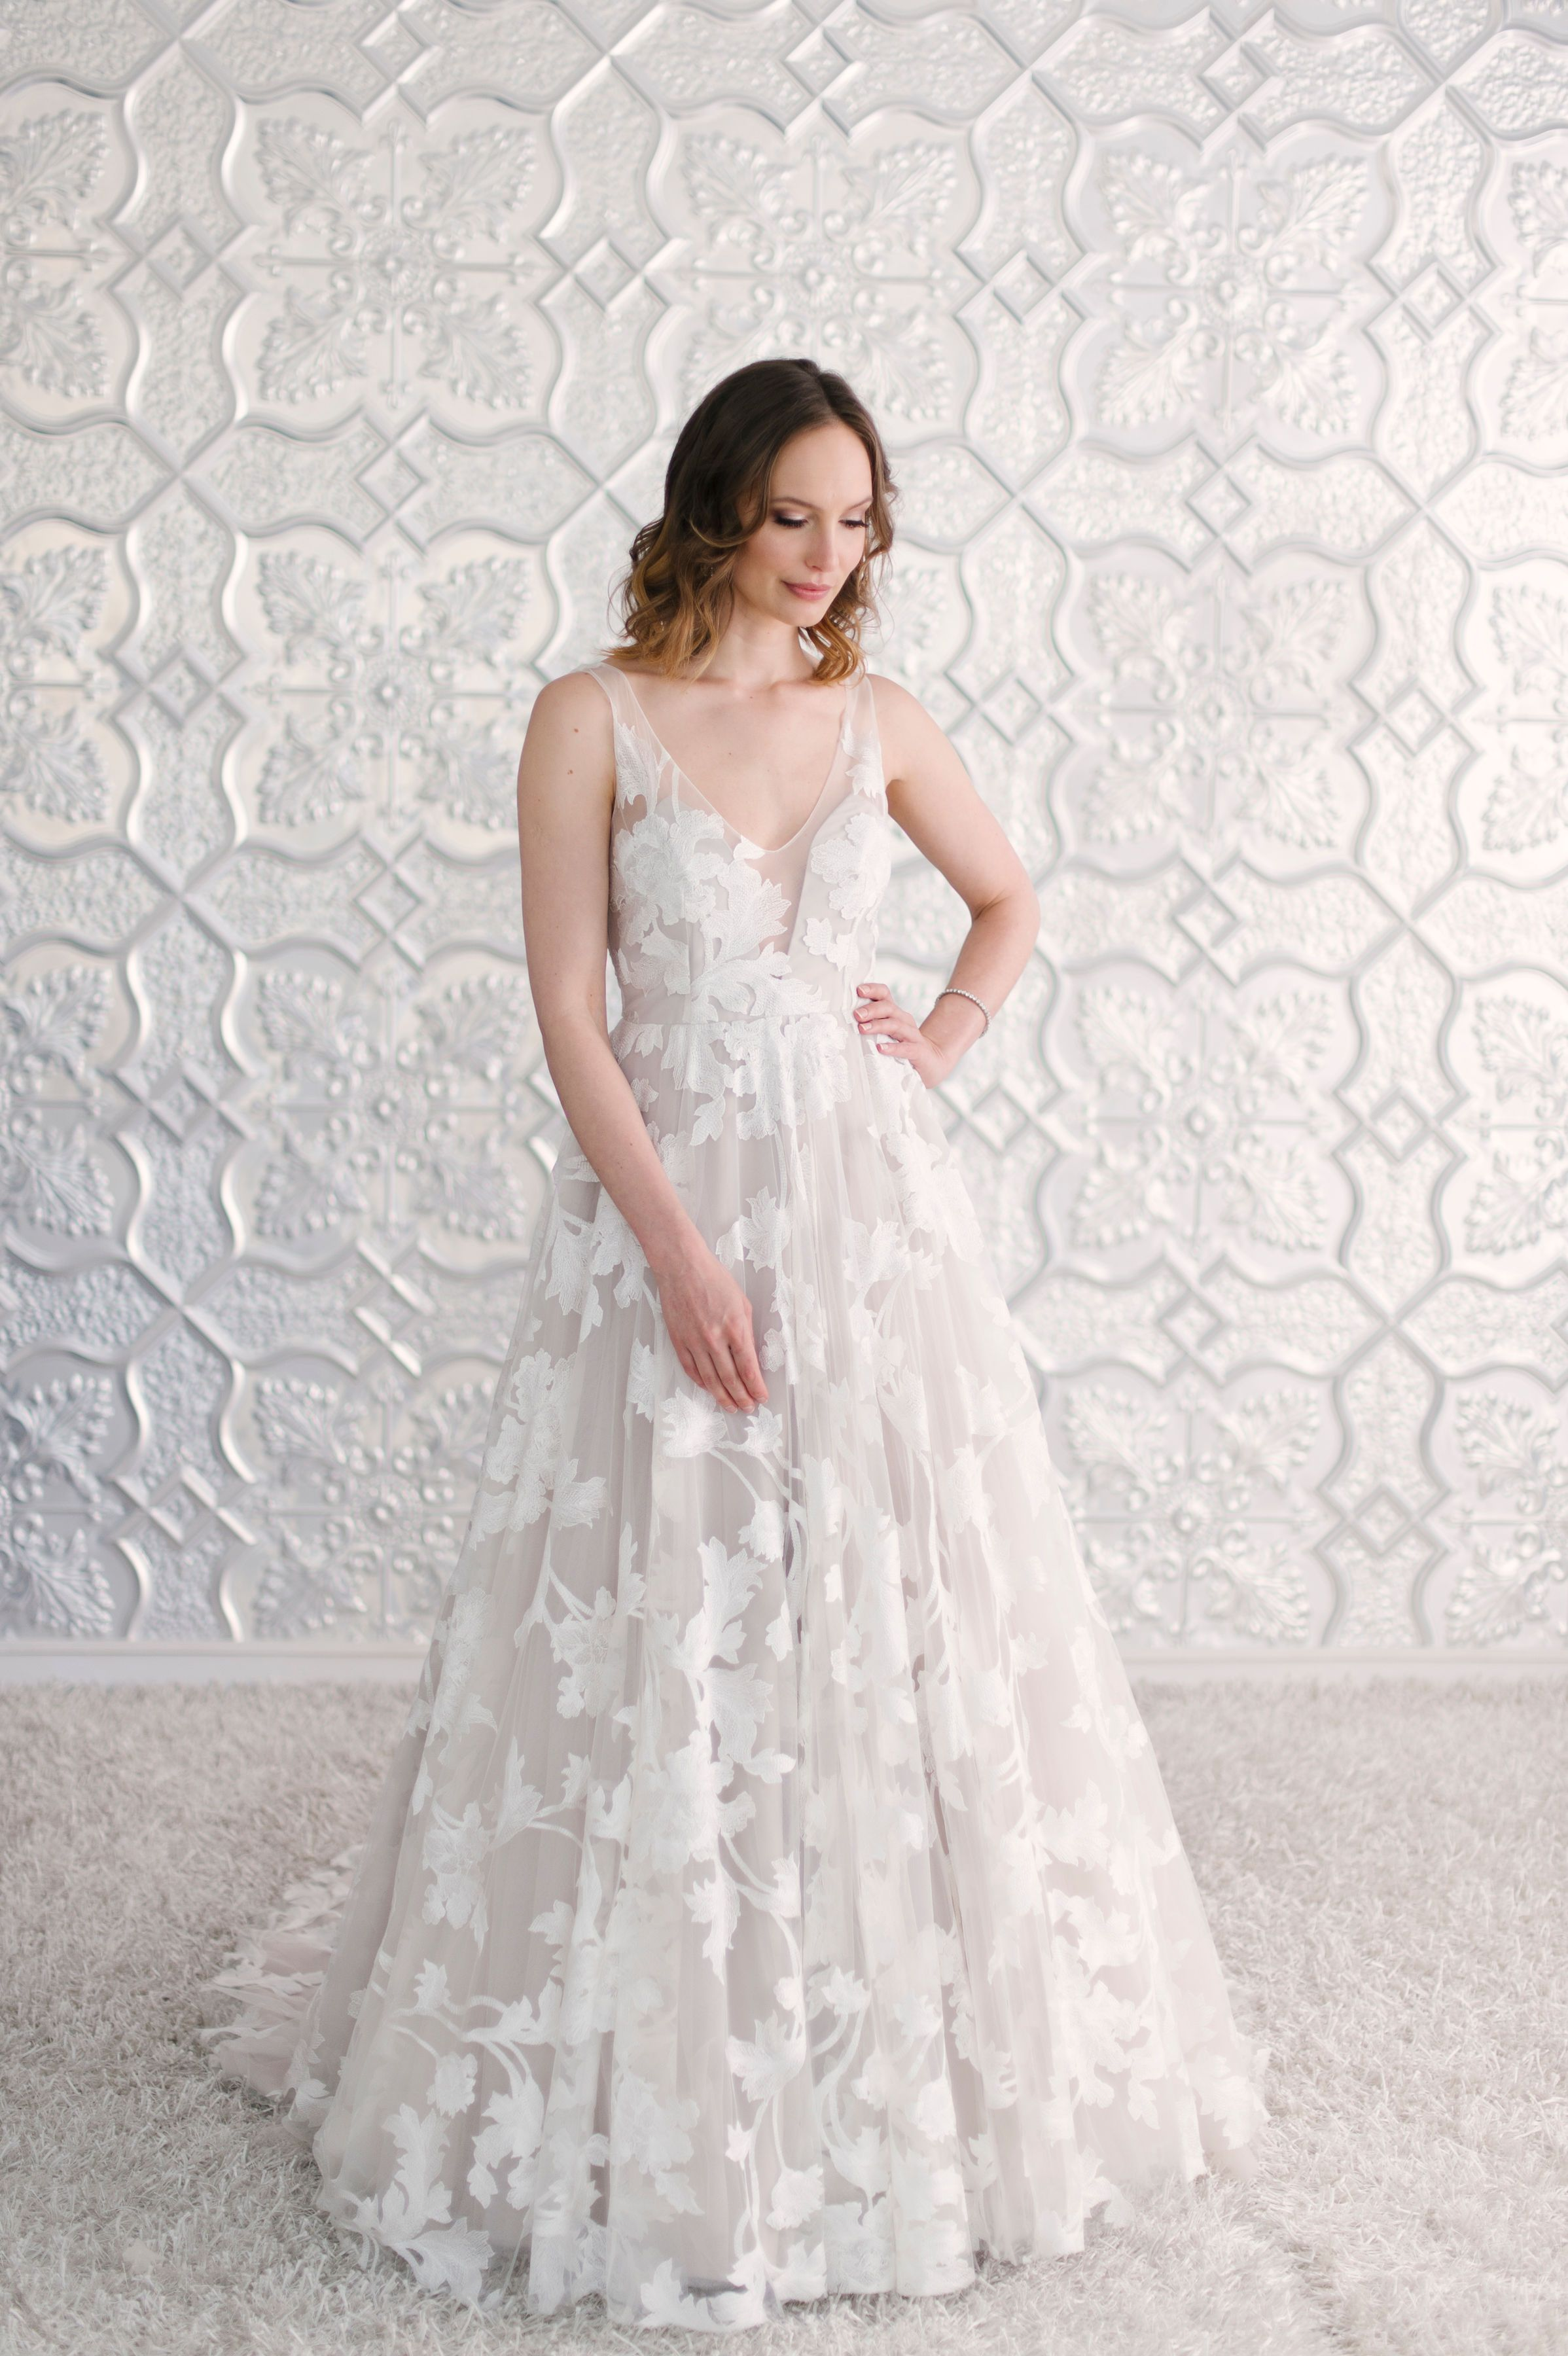 Iris 2019 Wendy Makin Bridal Couture Collection Bridal Couture